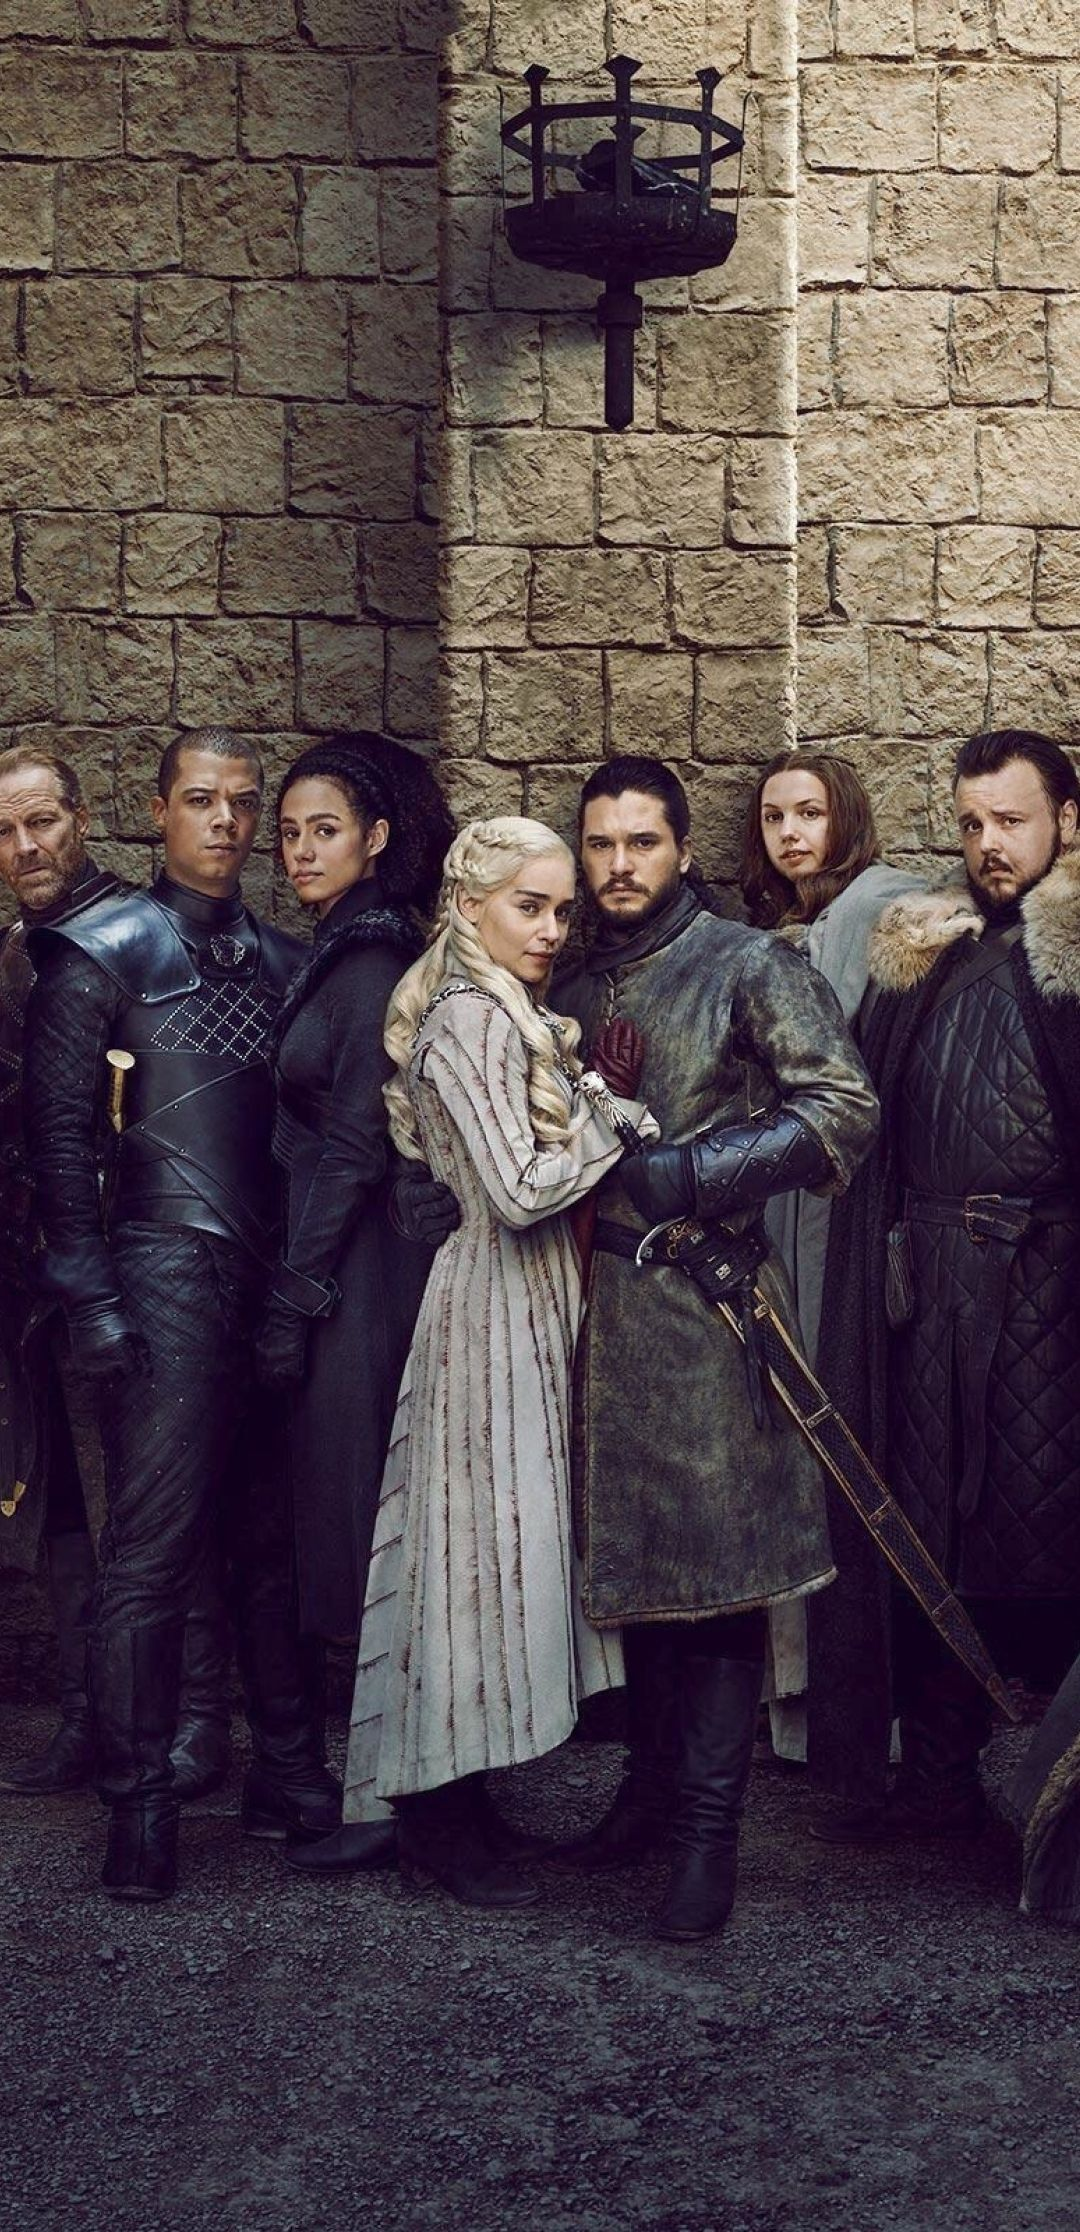 1080x2232 1080x2232 Game of Thrones 2019 Full Cast 1080x2232 ...